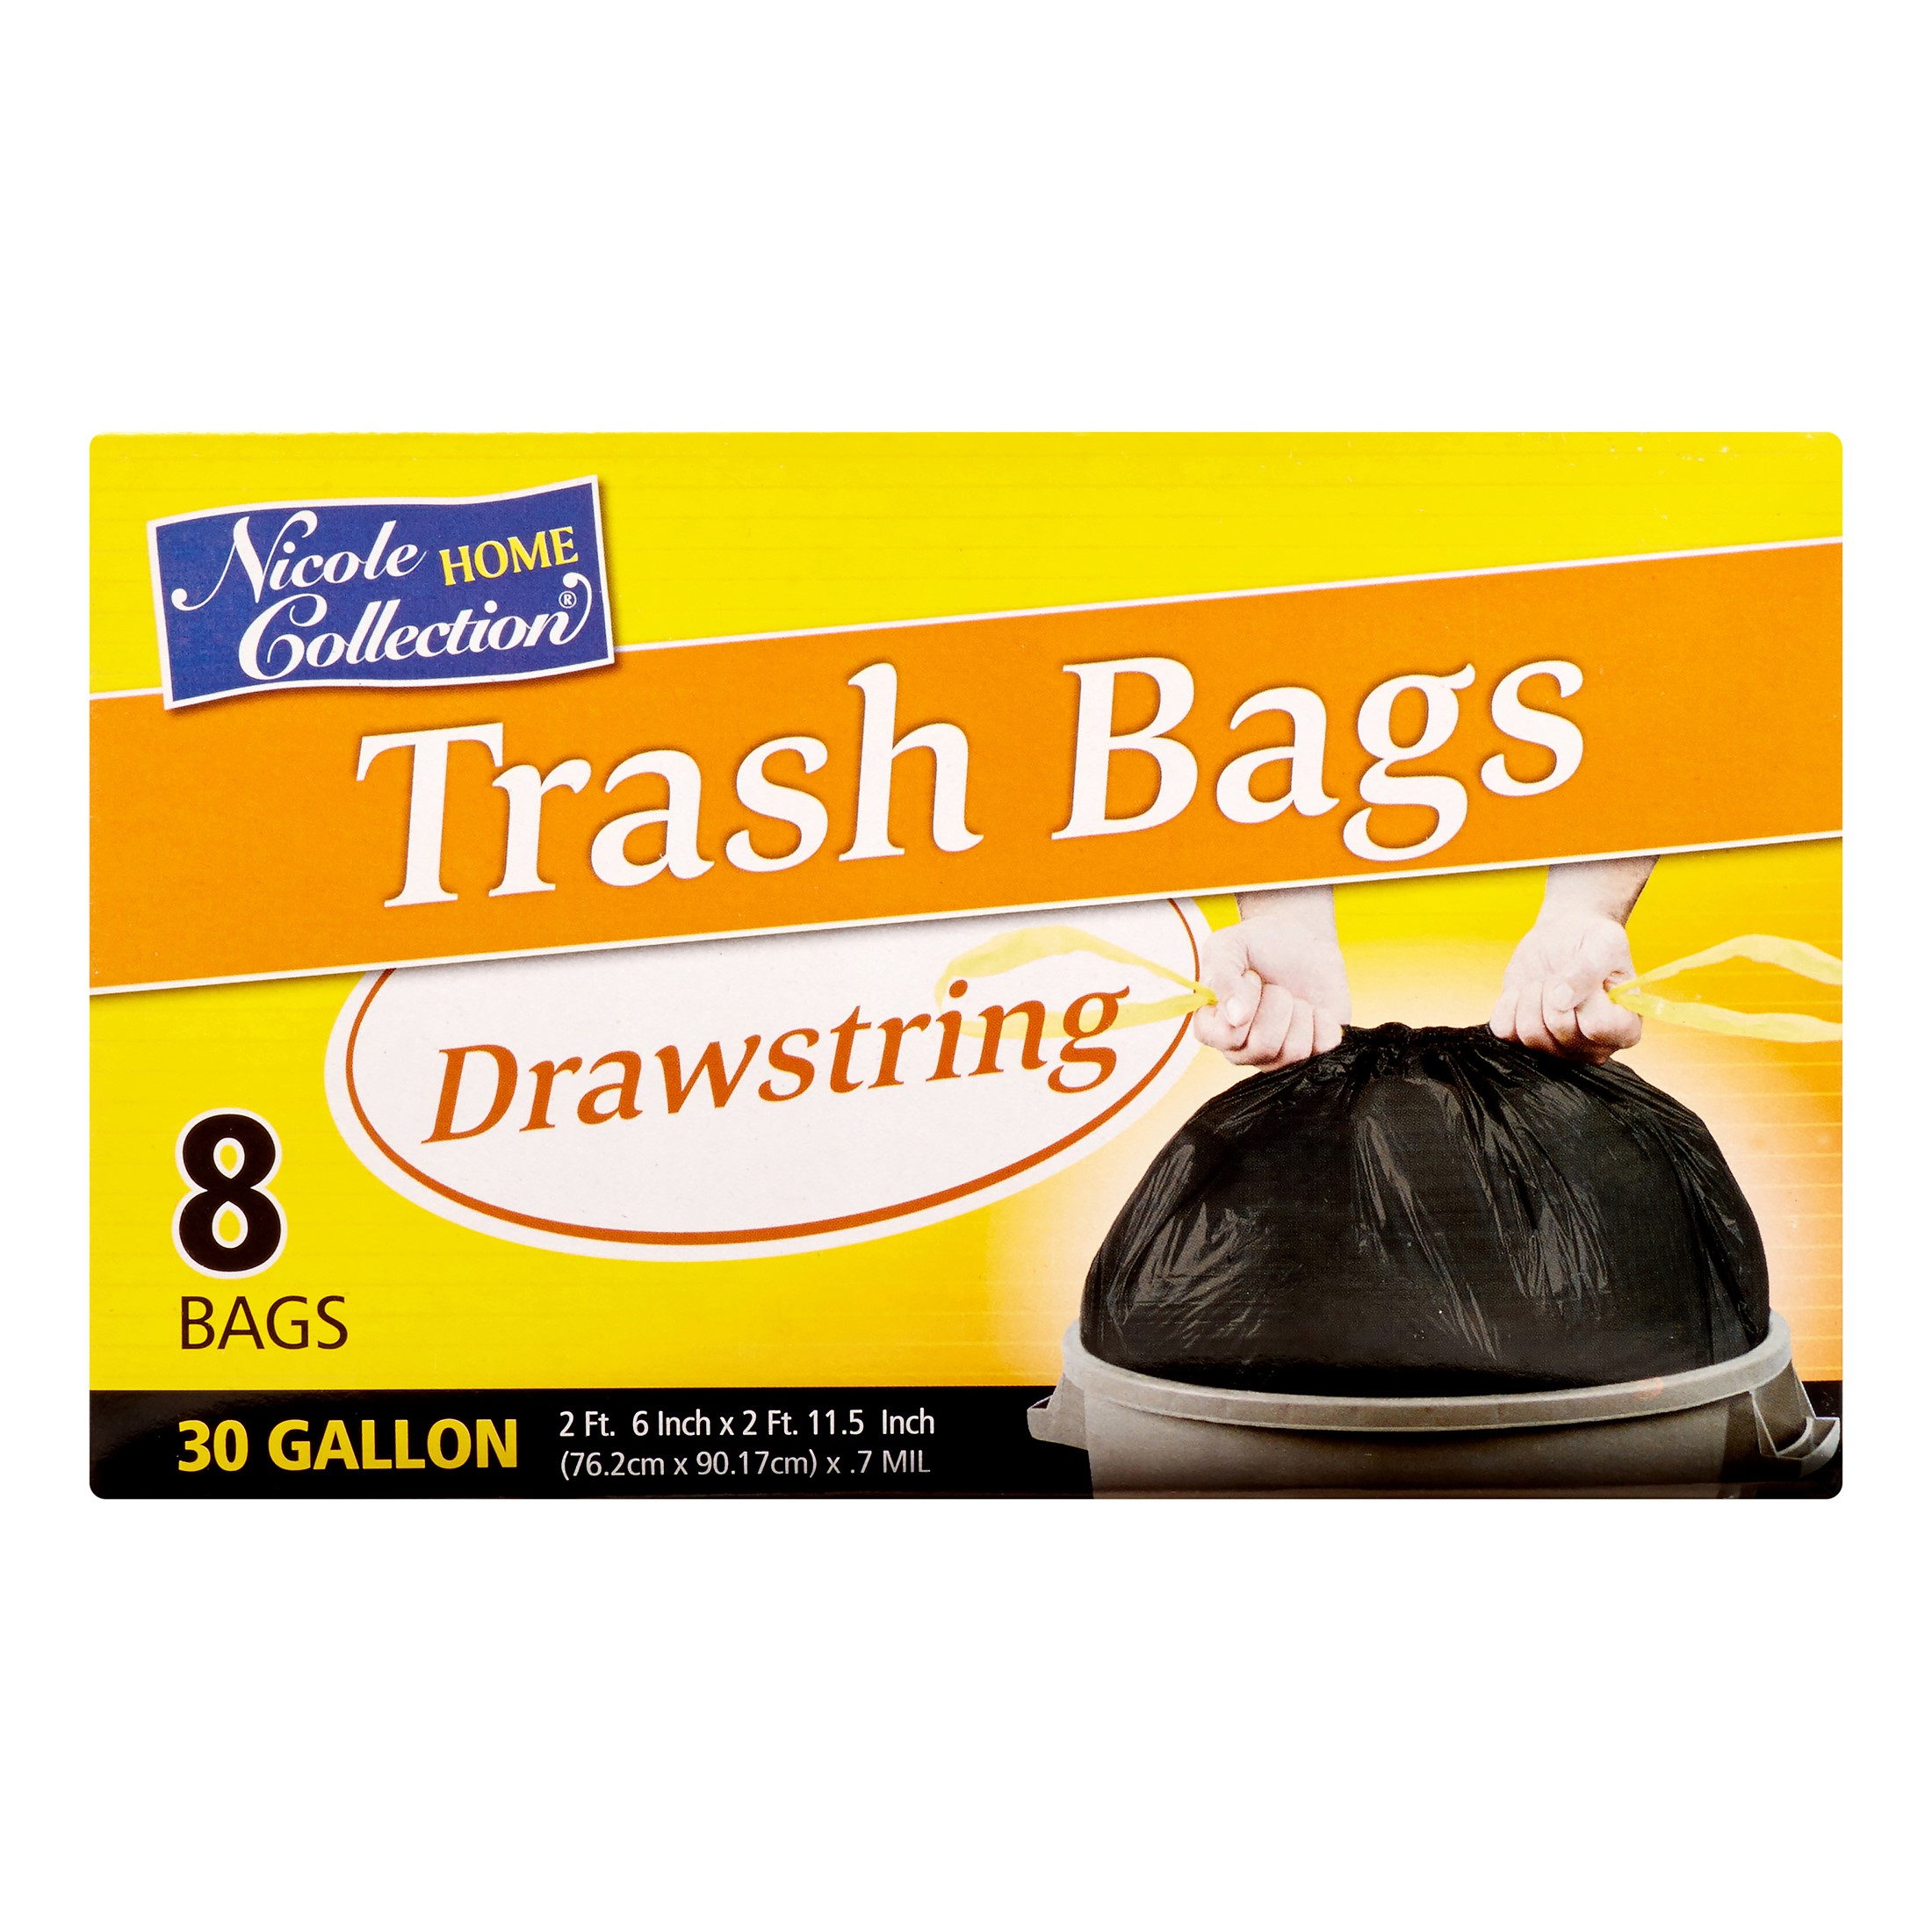 Nicole Home Collection Drawstring Trash Bags, 30 Gallon, Black, 8 Ct